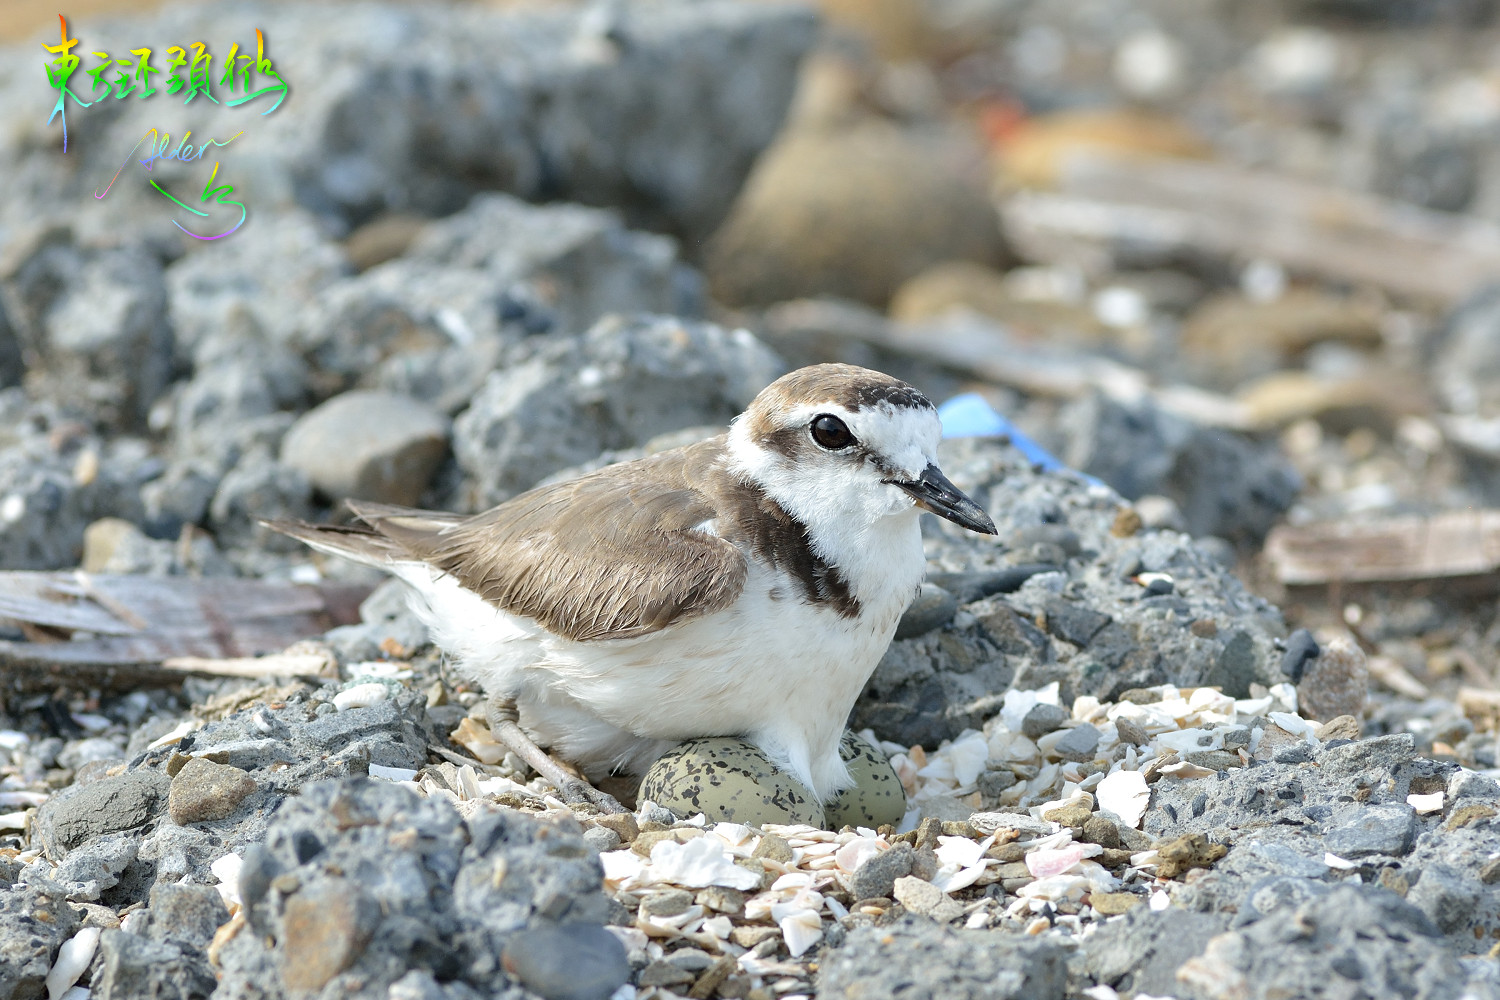 Kentish_Plover_8968